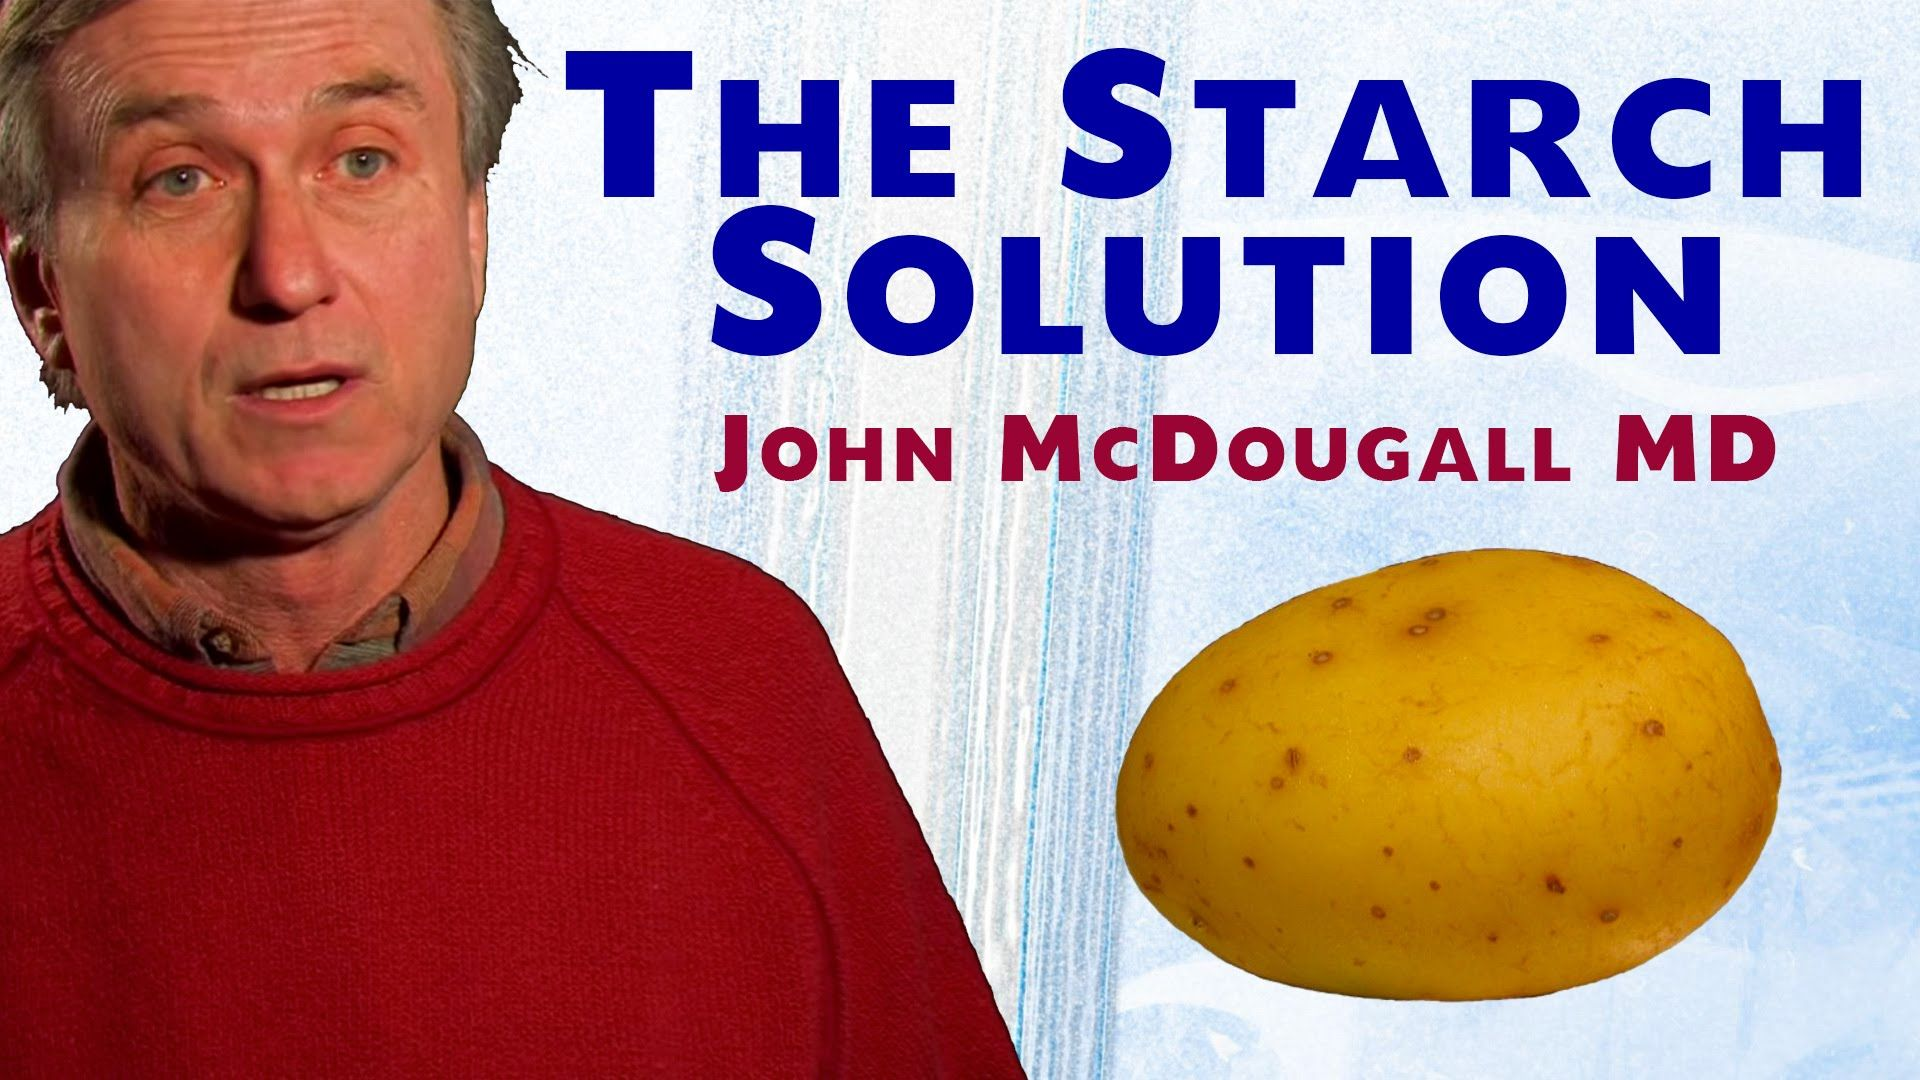 The Starch Solution John Mcdougall Md Starch Solution Mcdougall Diet Starch Based Diet